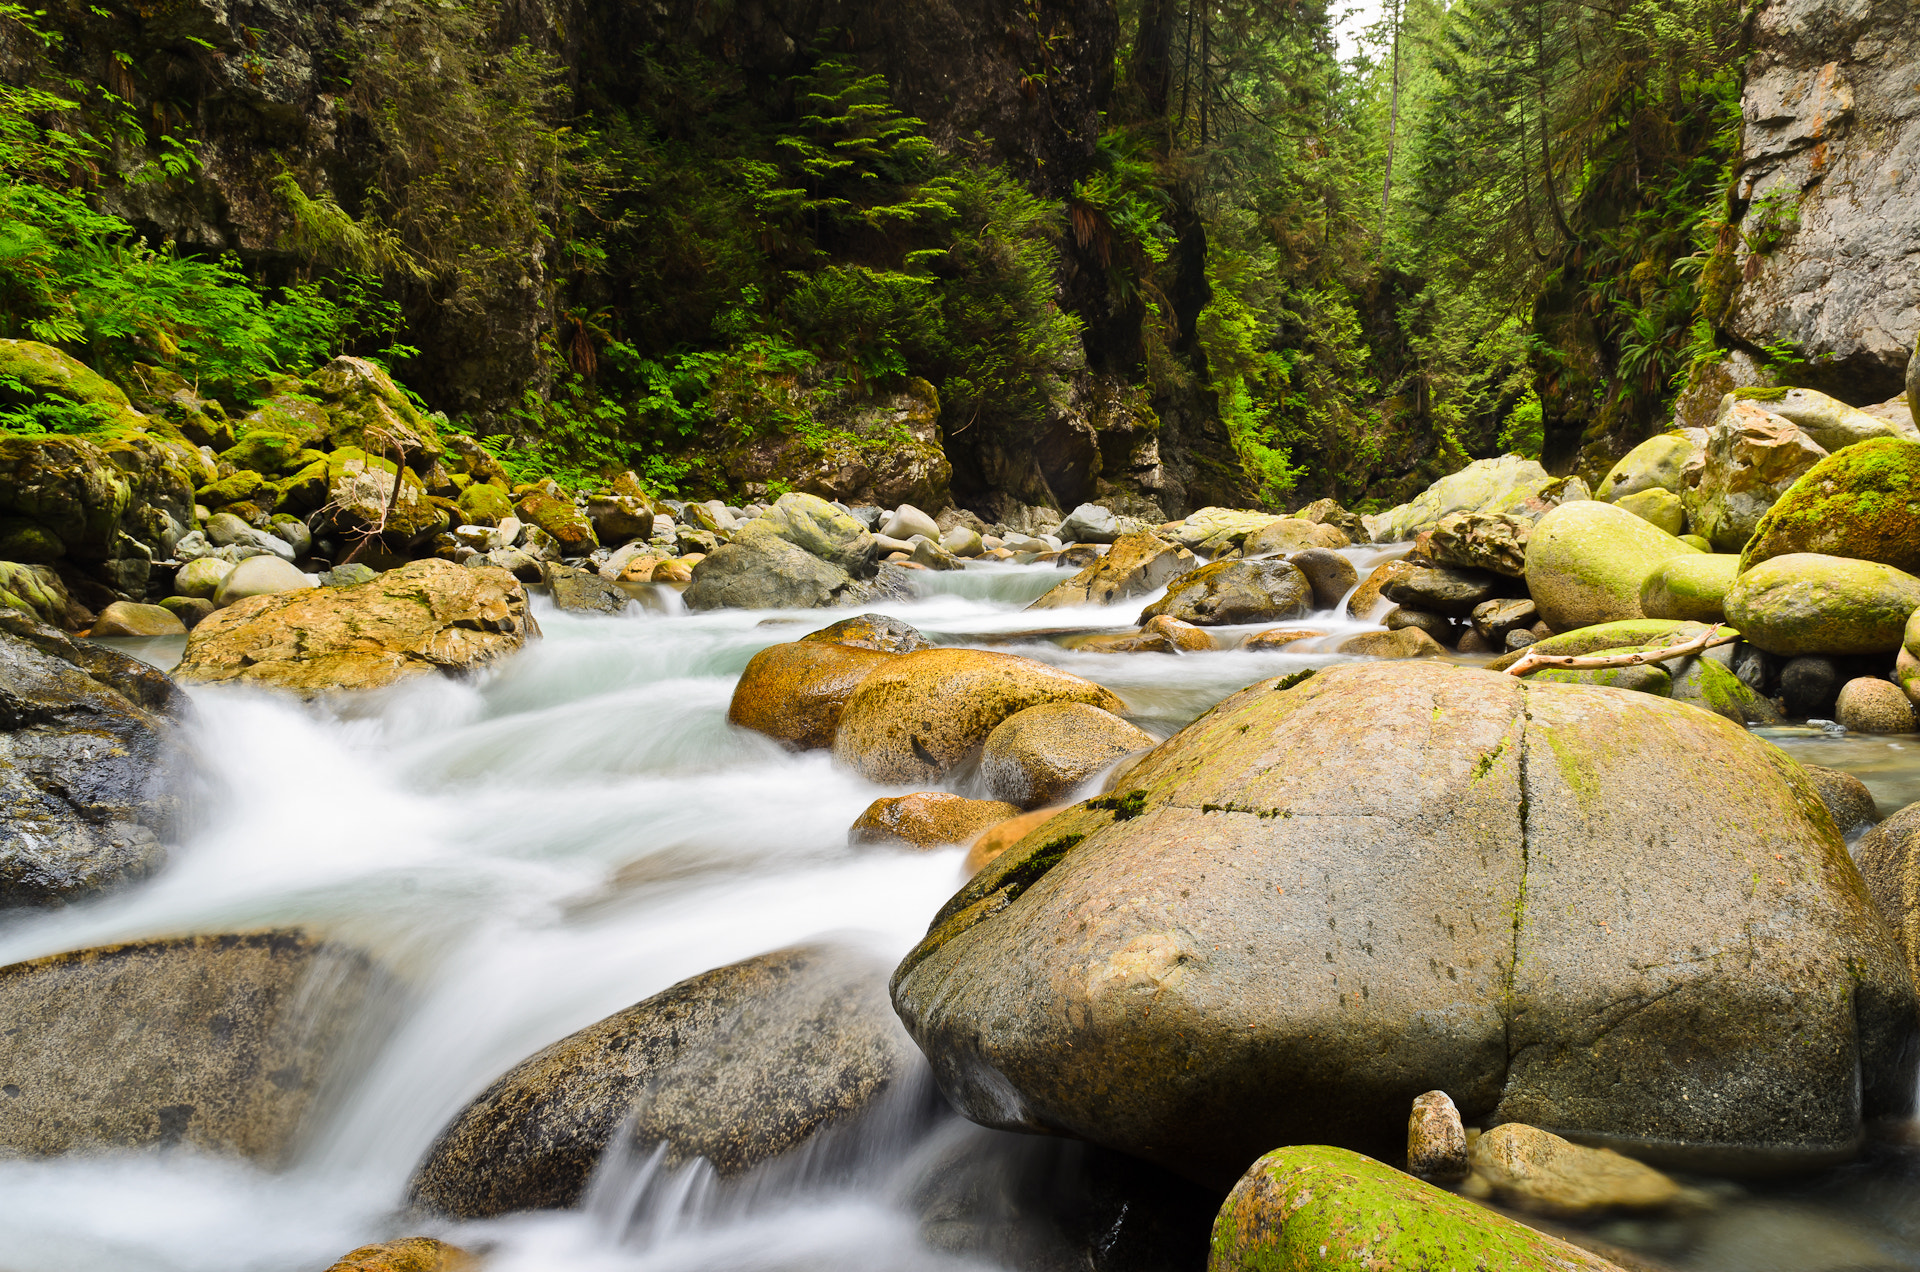 Photograph Lynn Canyon Creek by dohitsch on 500px